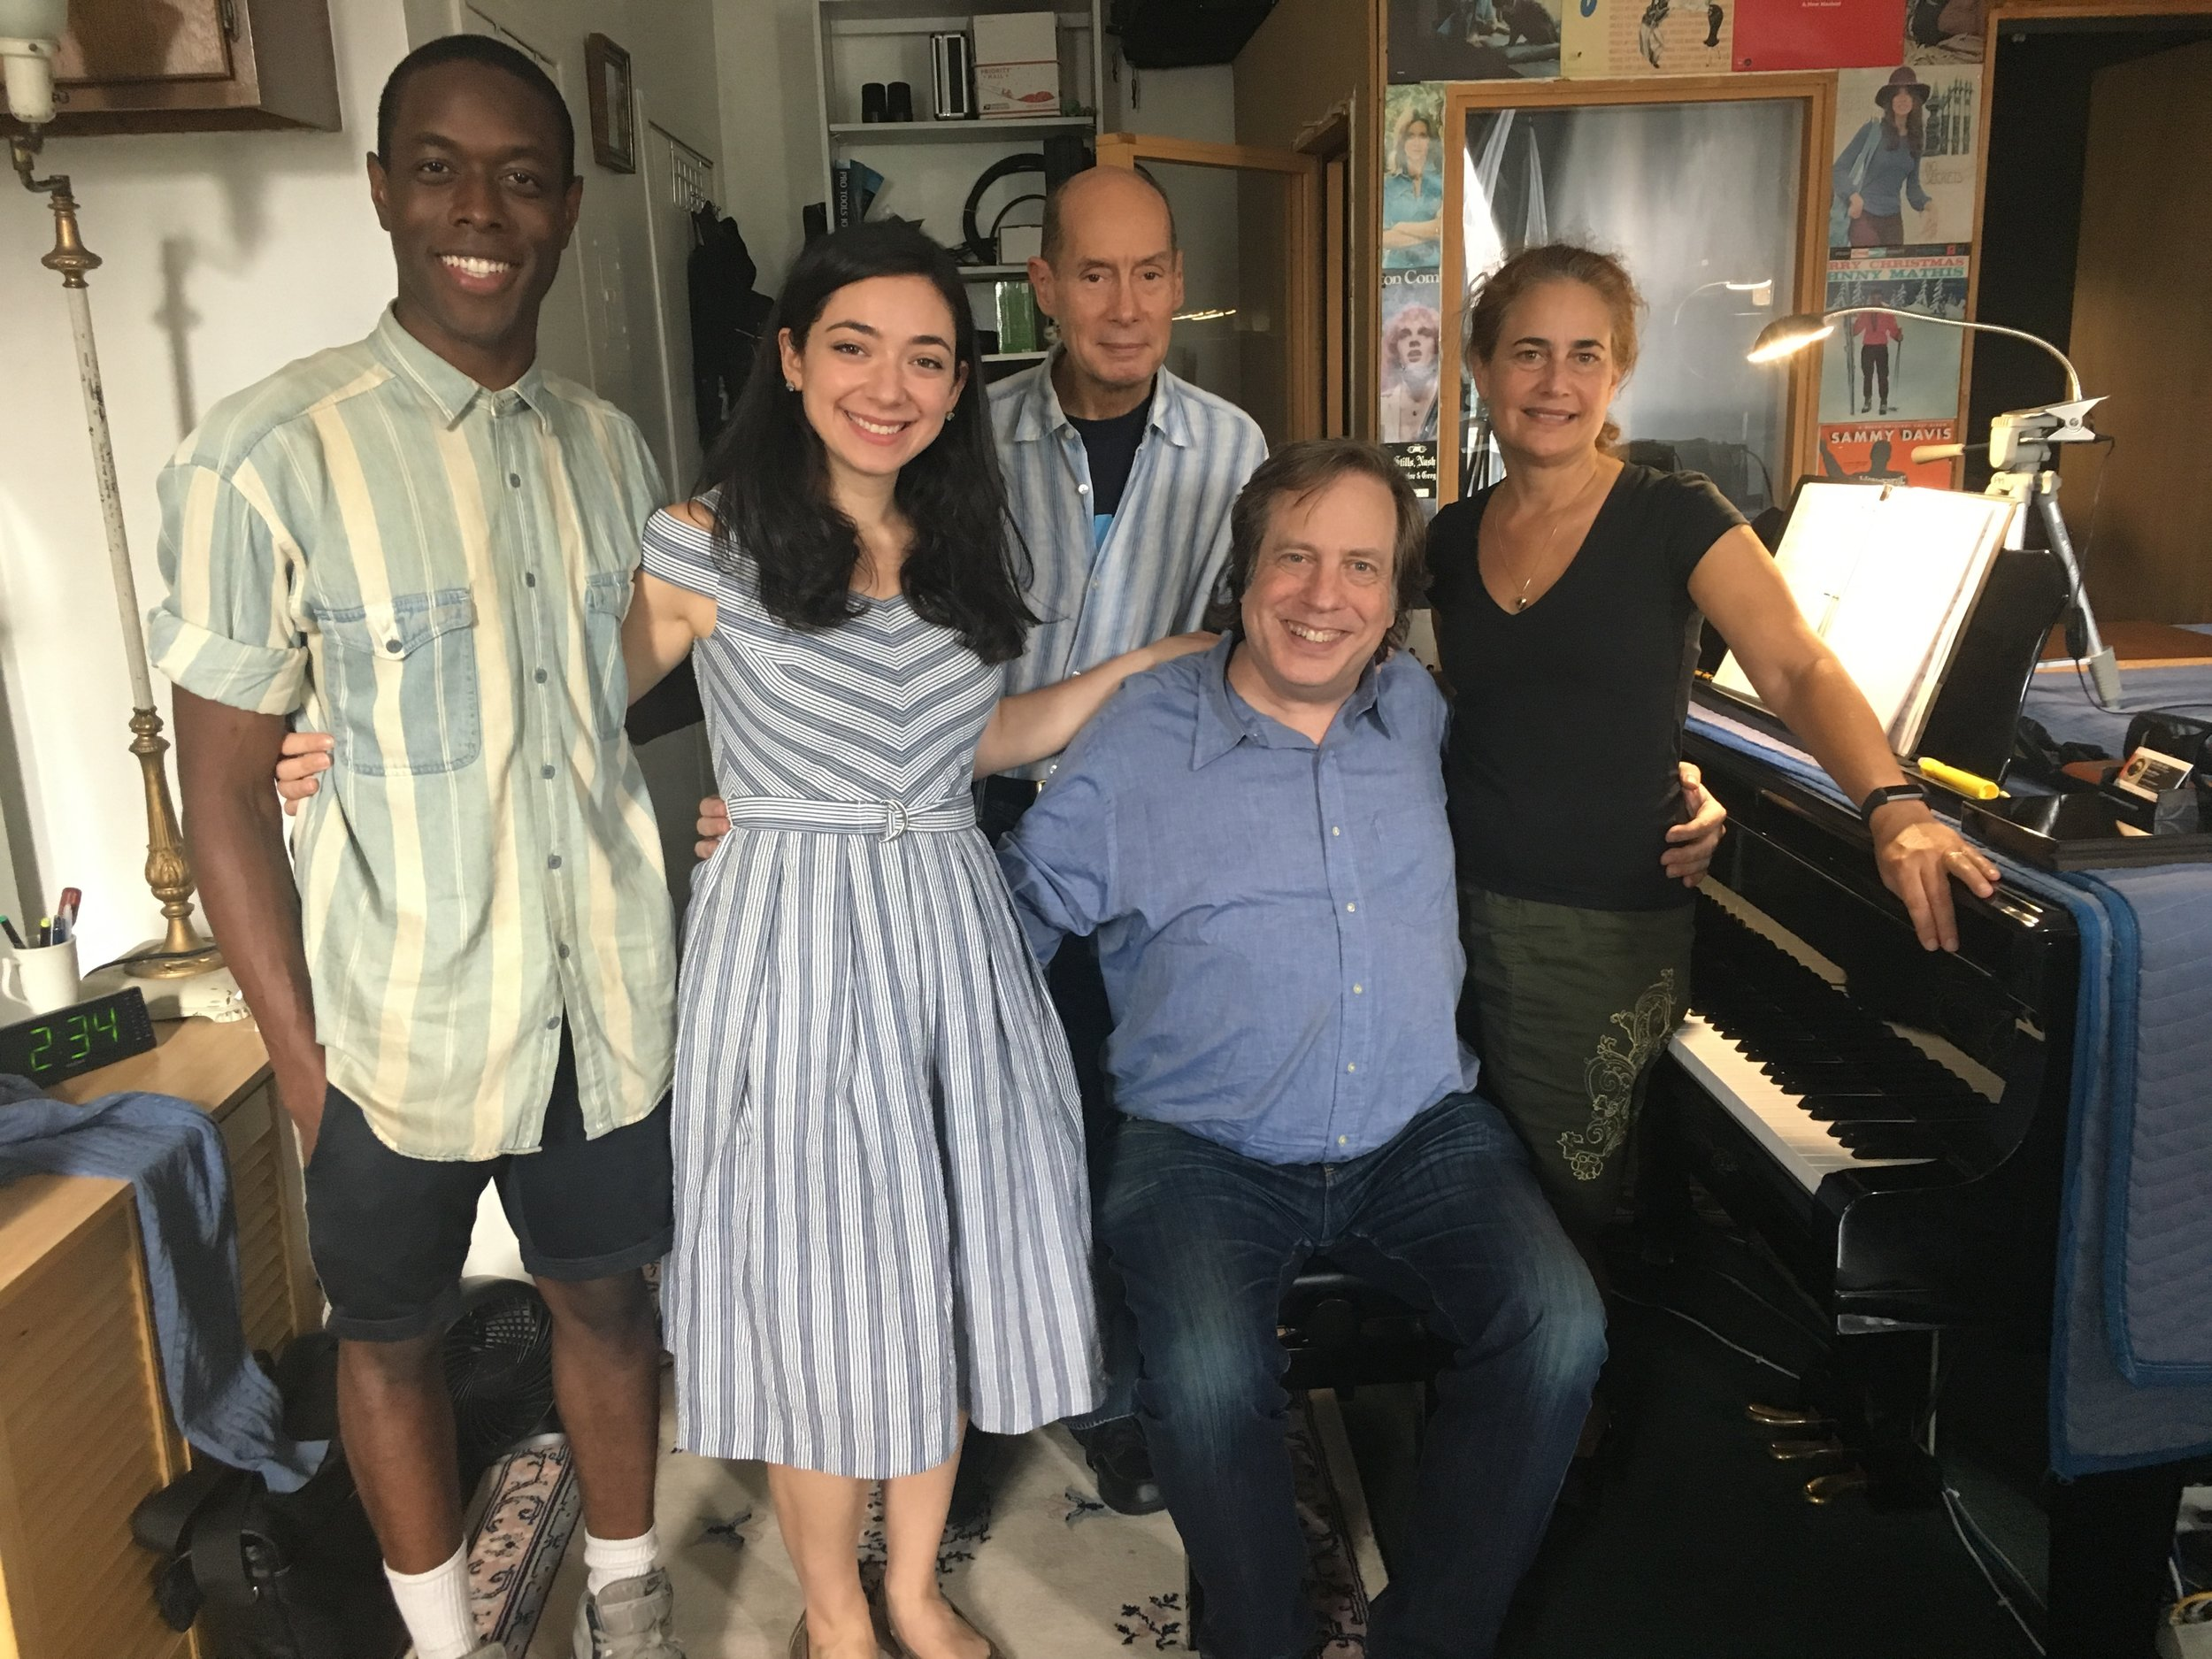 PHOTO: The three authors, with two of the performers, at a recording session.